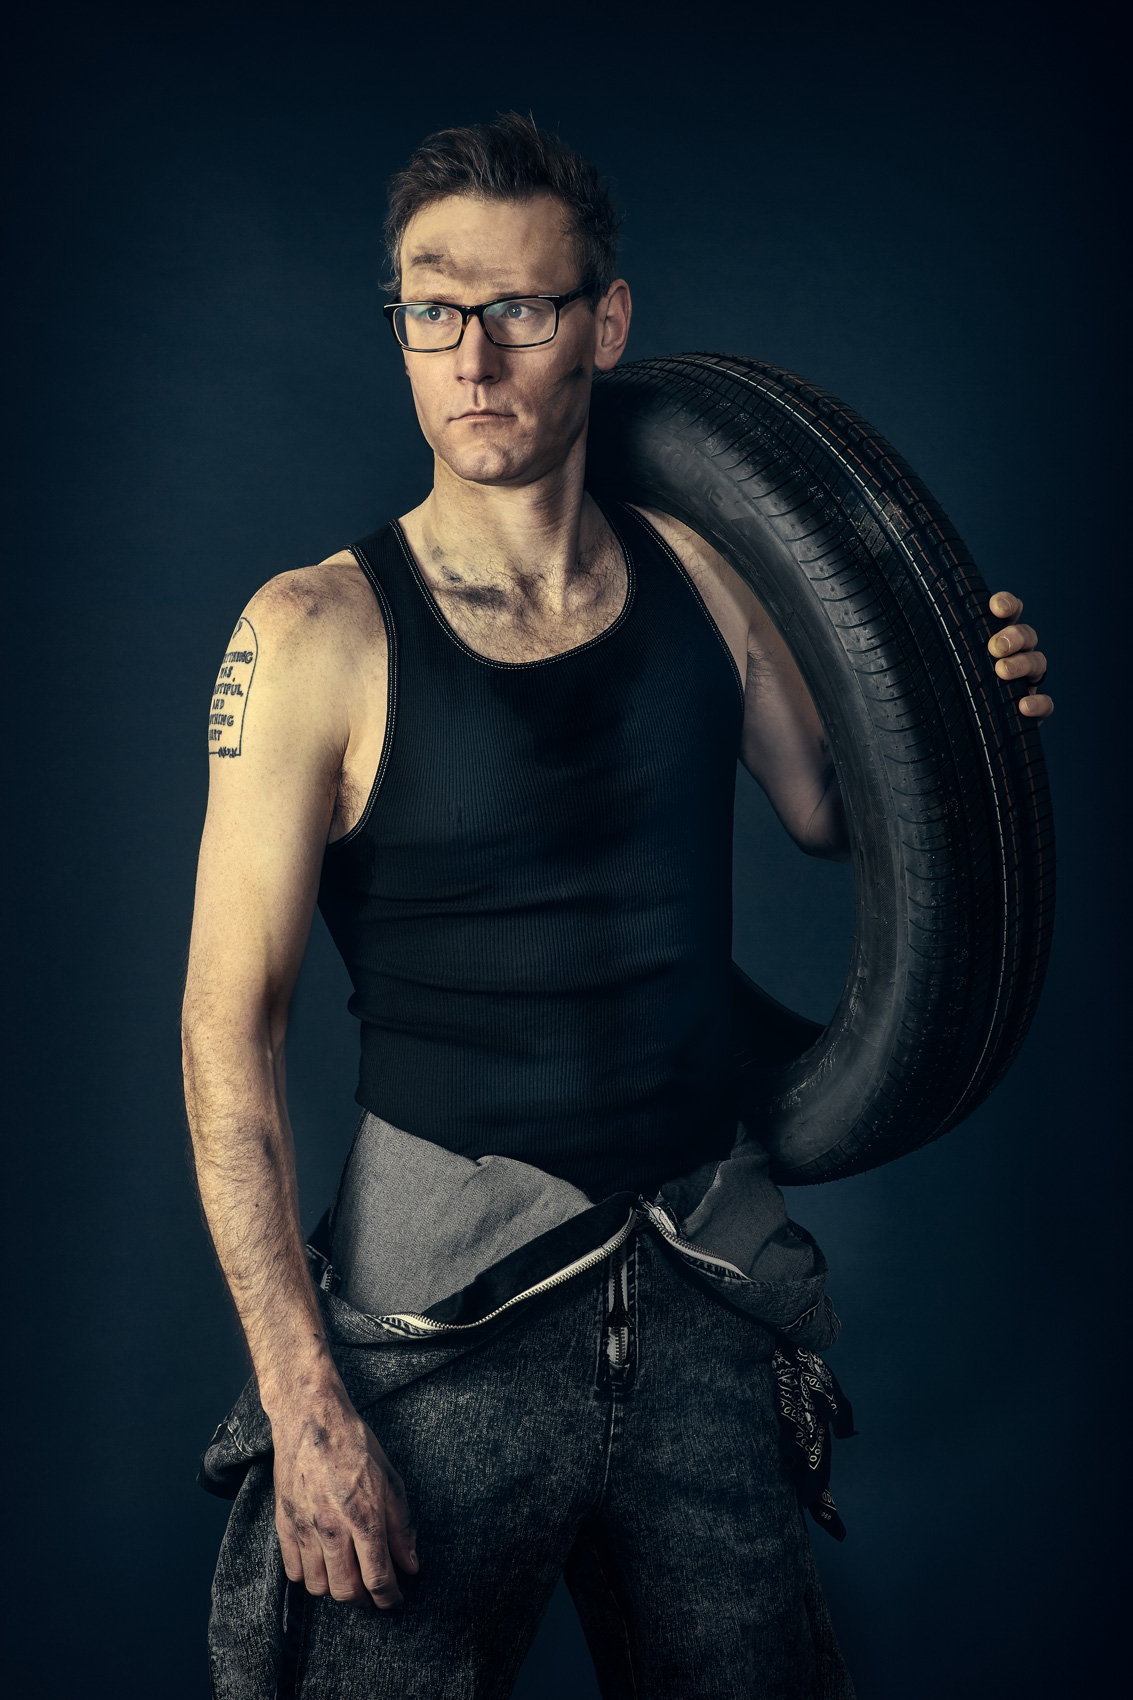 Portrait of man holding a tire photographed by Dave Rentauskas